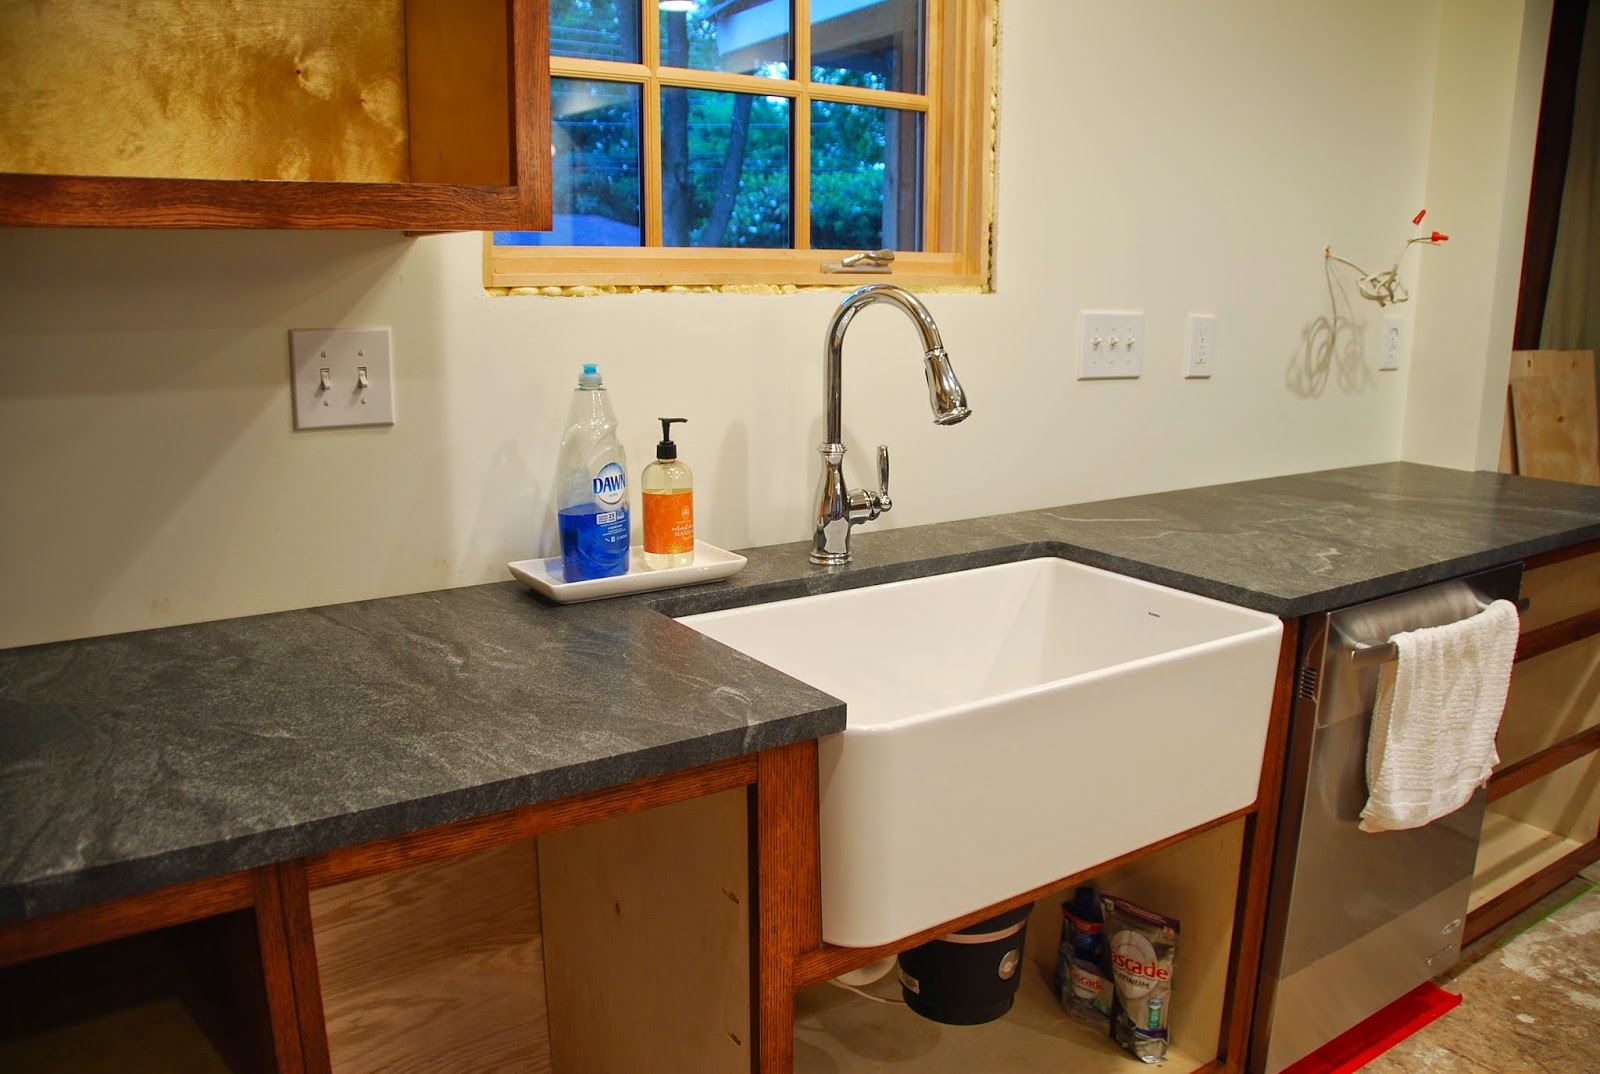 Dishwasher Granite Countertop : Hope youre having a great week - thanks for checking in with us.